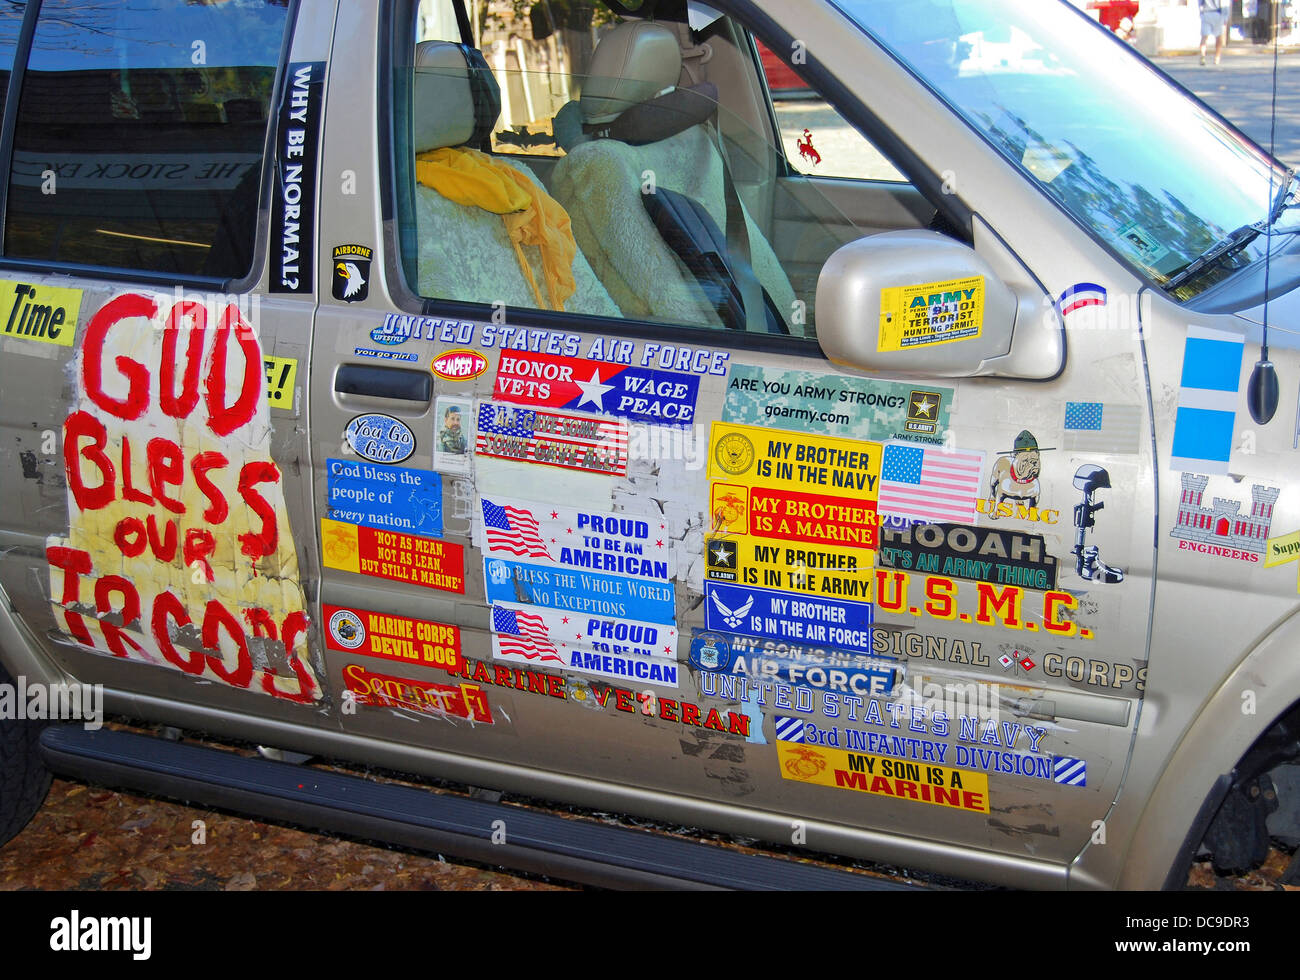 Manchester by the Sea, MA. Van with decals supporting U.S. troops Stock Photo